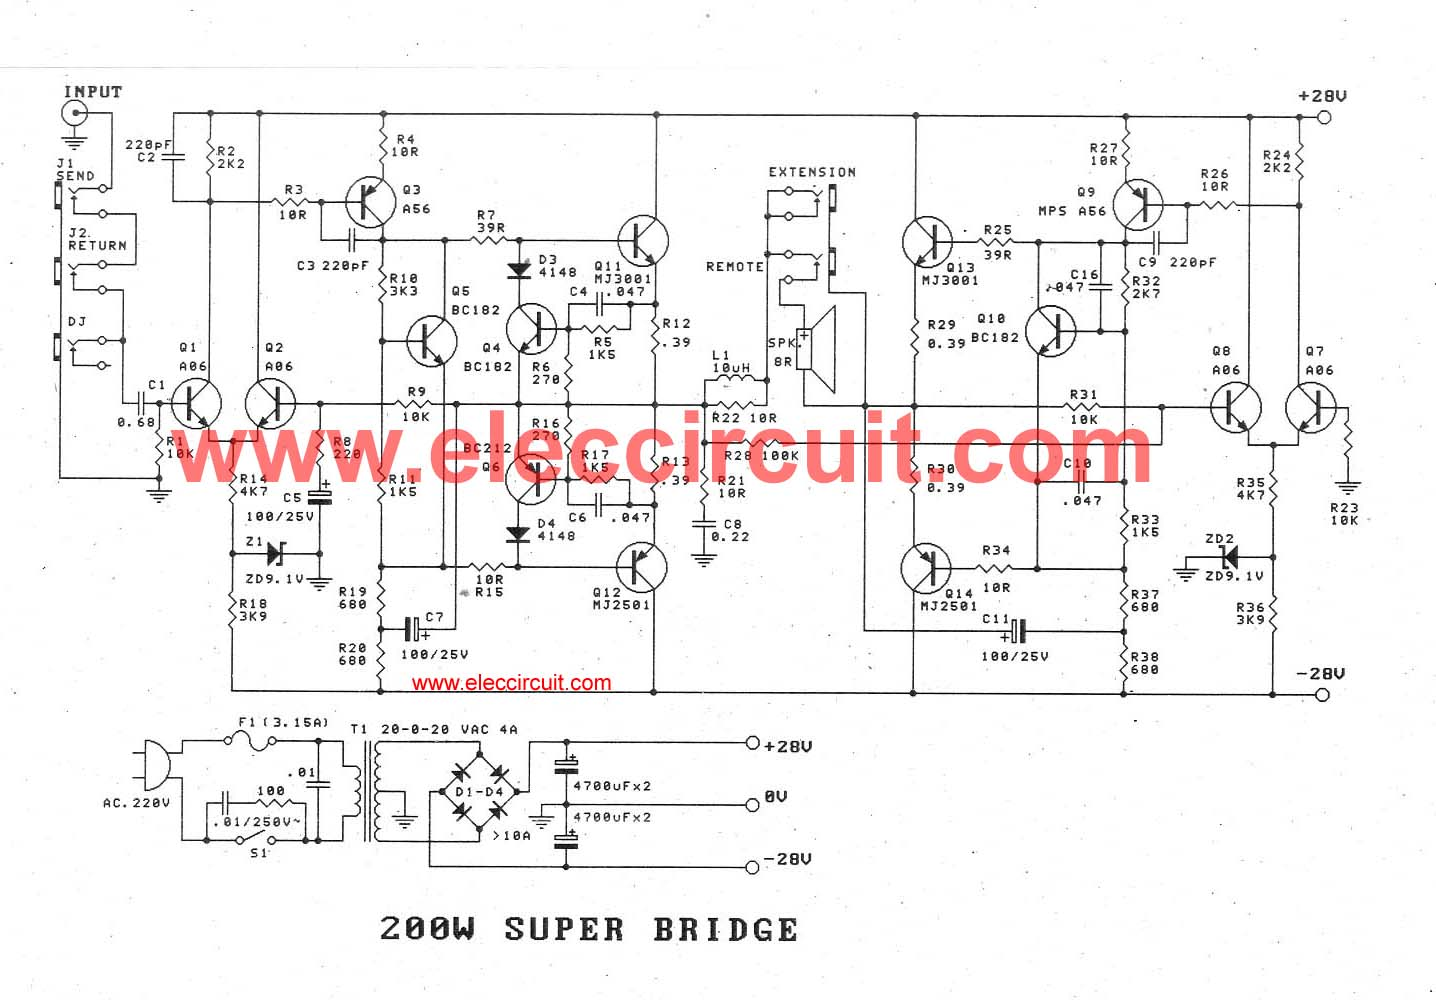 High Power Amplifier Circuit Ideas Using Transistors 100w To 300w